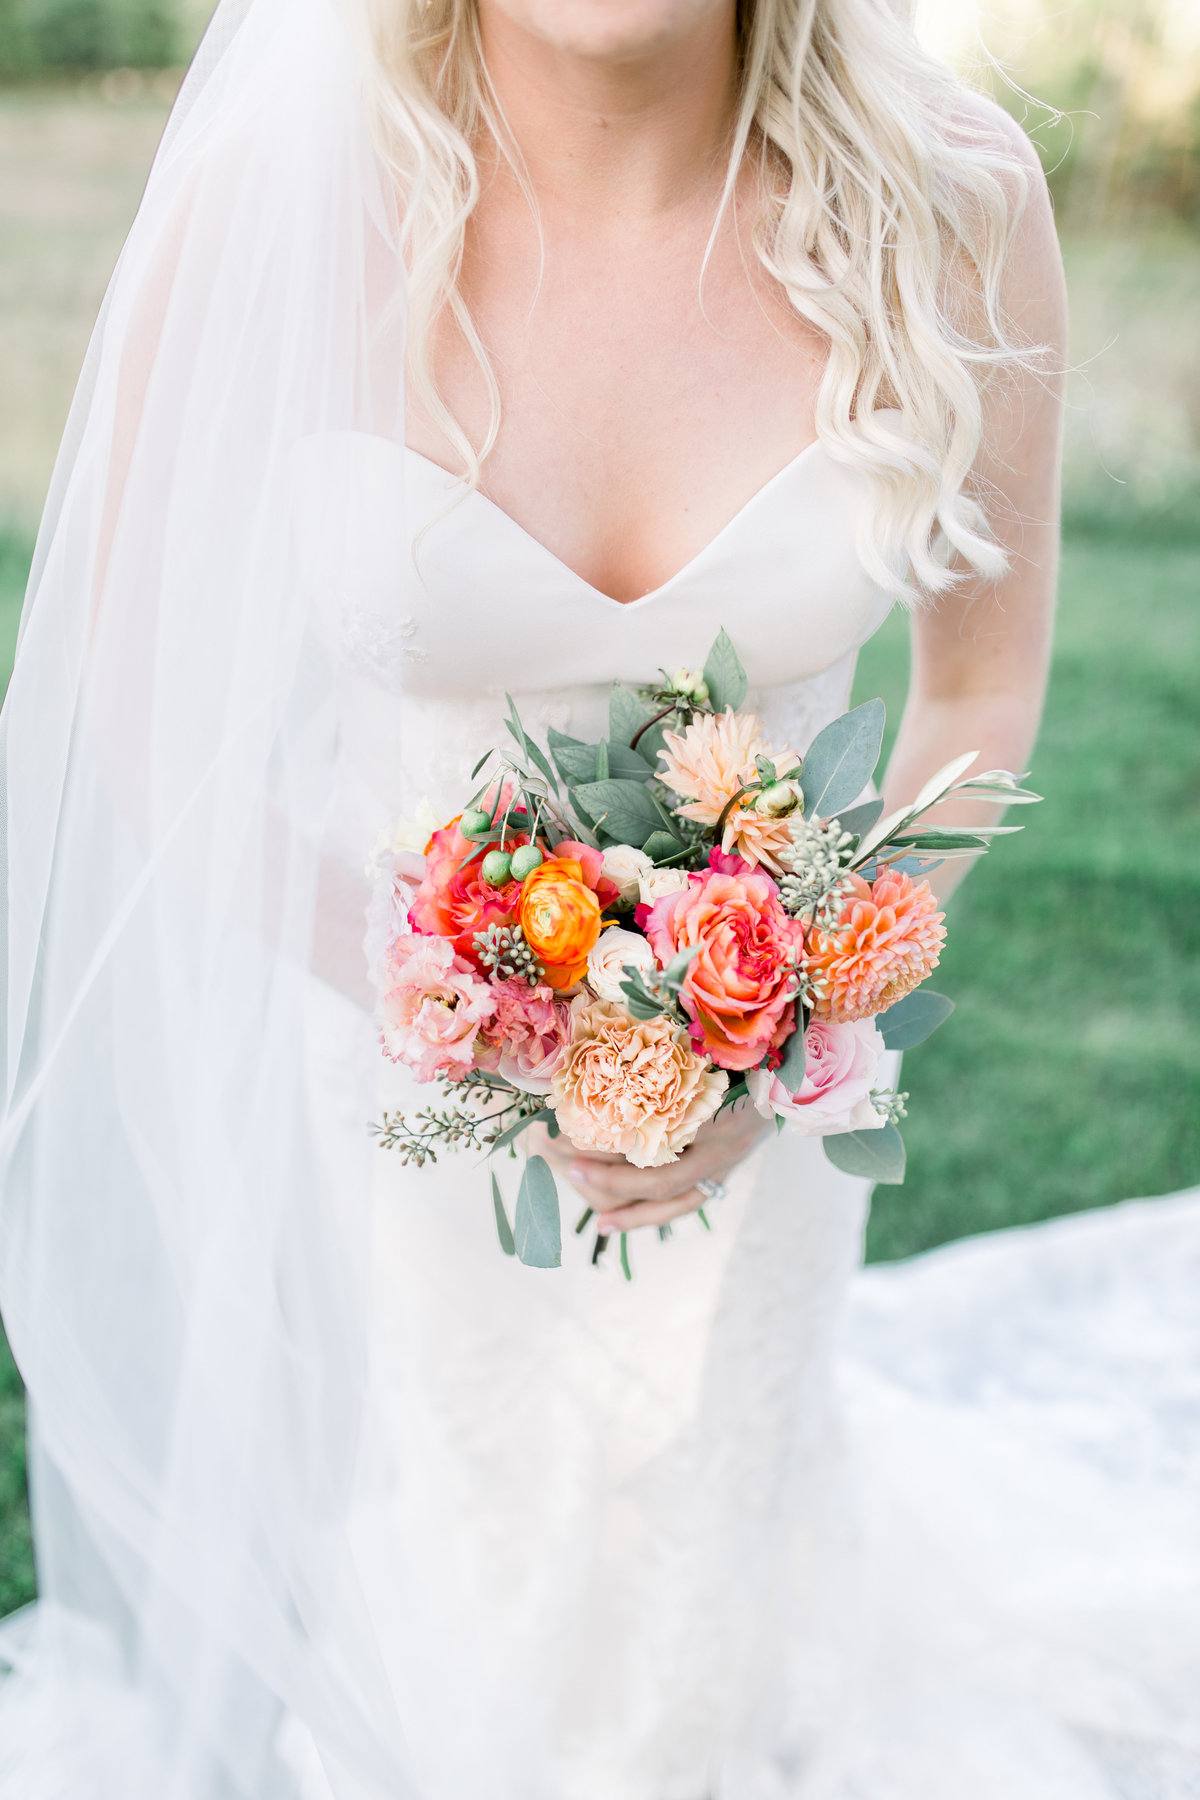 Northern Michigan wedding photographer, Cynthia Boyle, captured Jen's fall inspired bridal bouquet